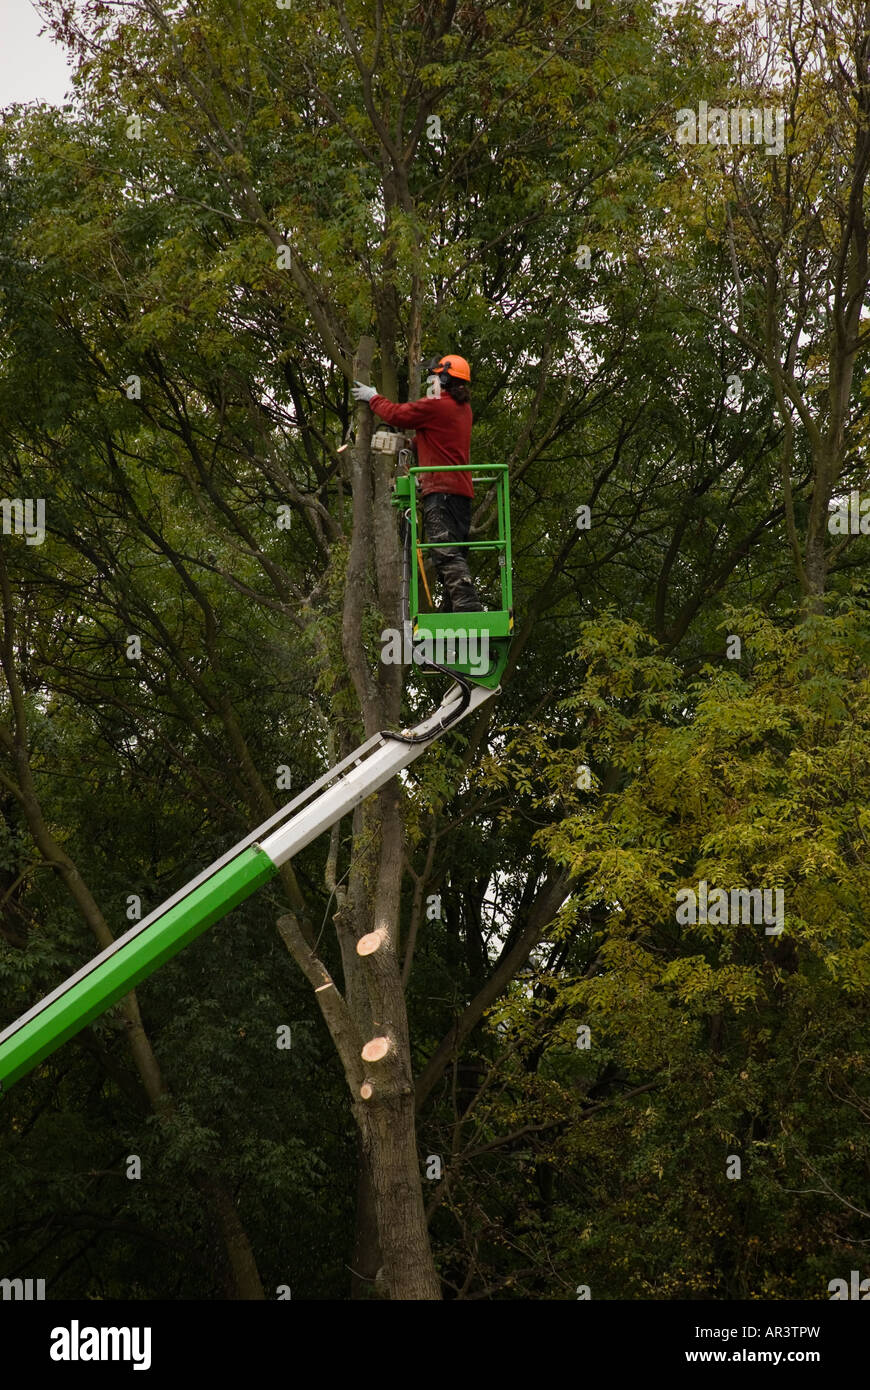 Tree Surgeon safely removing tree from a confined space using a hydraulic platform - Stock Image